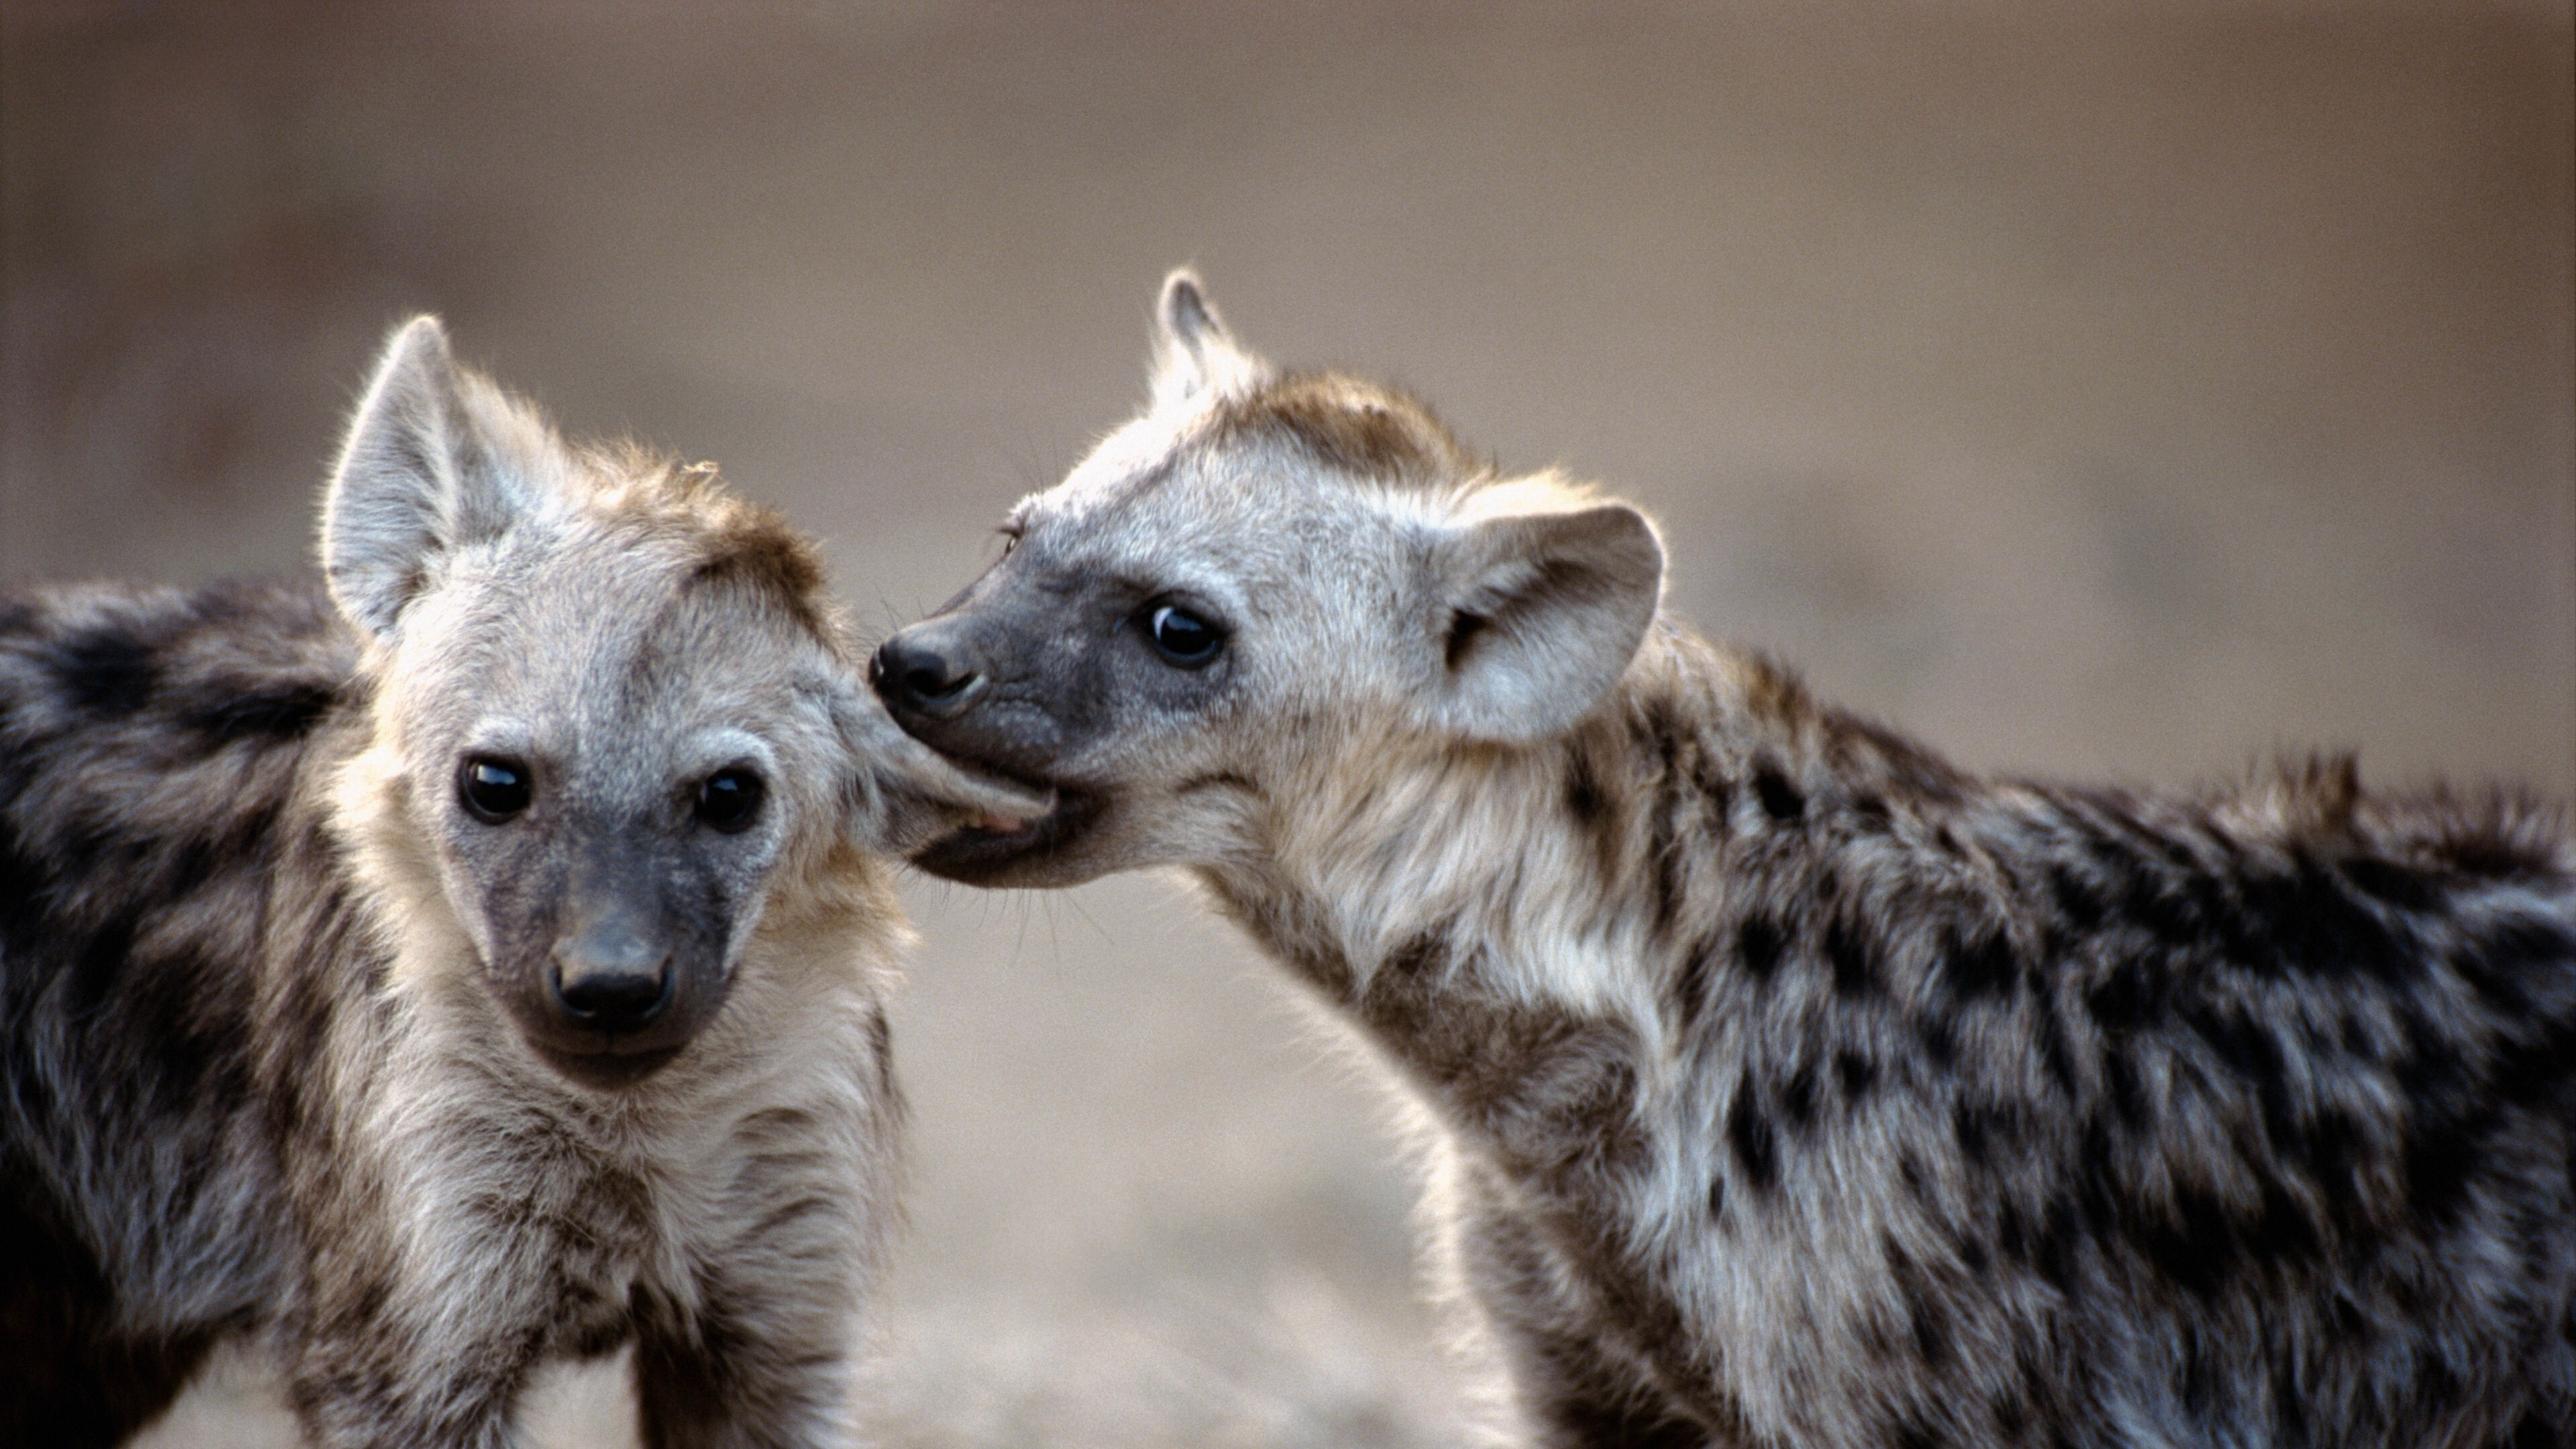 Cute Animal Wallpaper For Laptop Two Wild Animal Hyena Wallpapers Hd Wallpapers